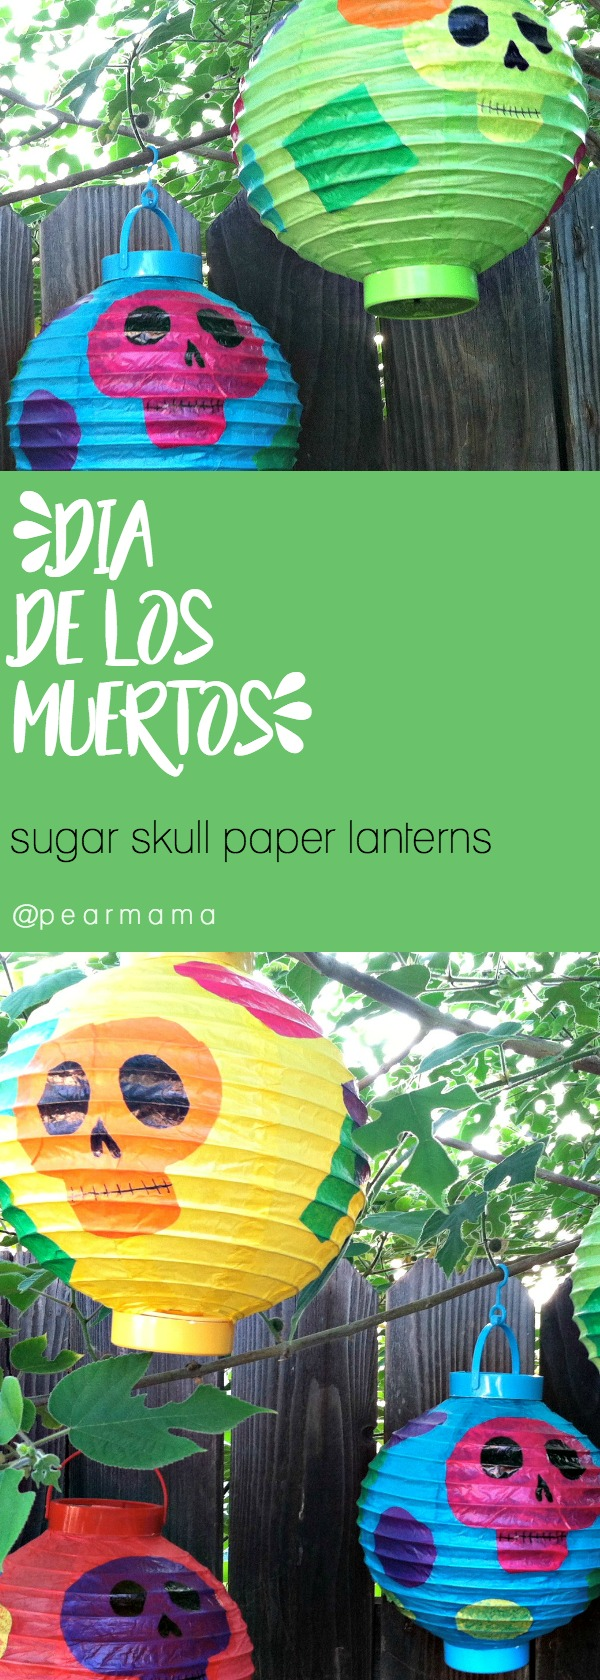 Transform simple paper lanterns with tissue paper and hand-drawn sugar skulls. Hang them around the house to celebrate Day of the Dead with your family.